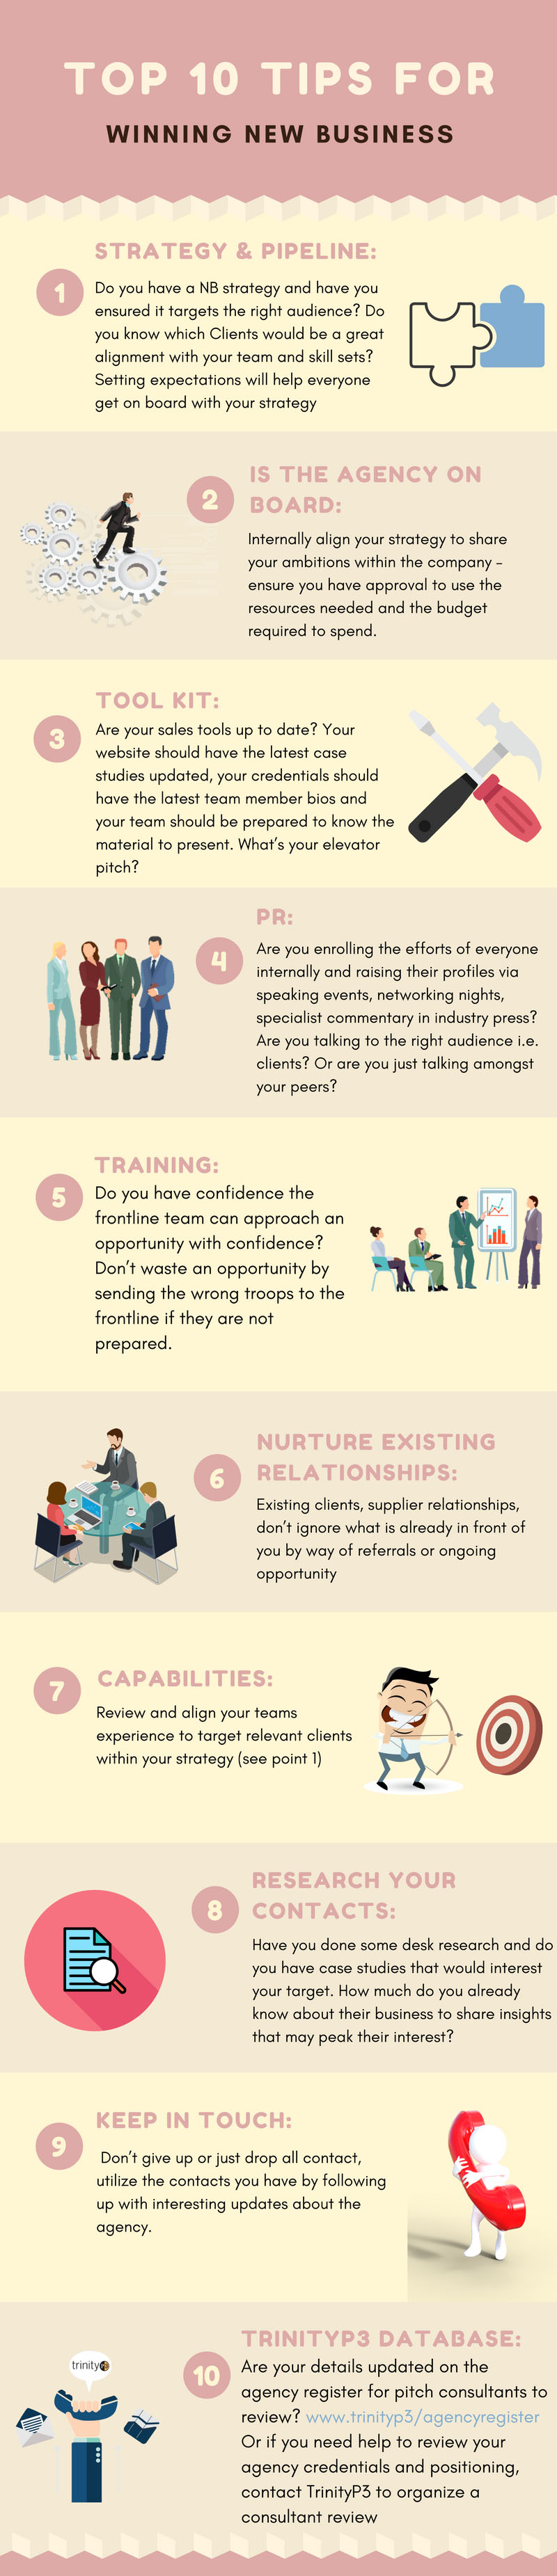 Top 10 tips for winning new business